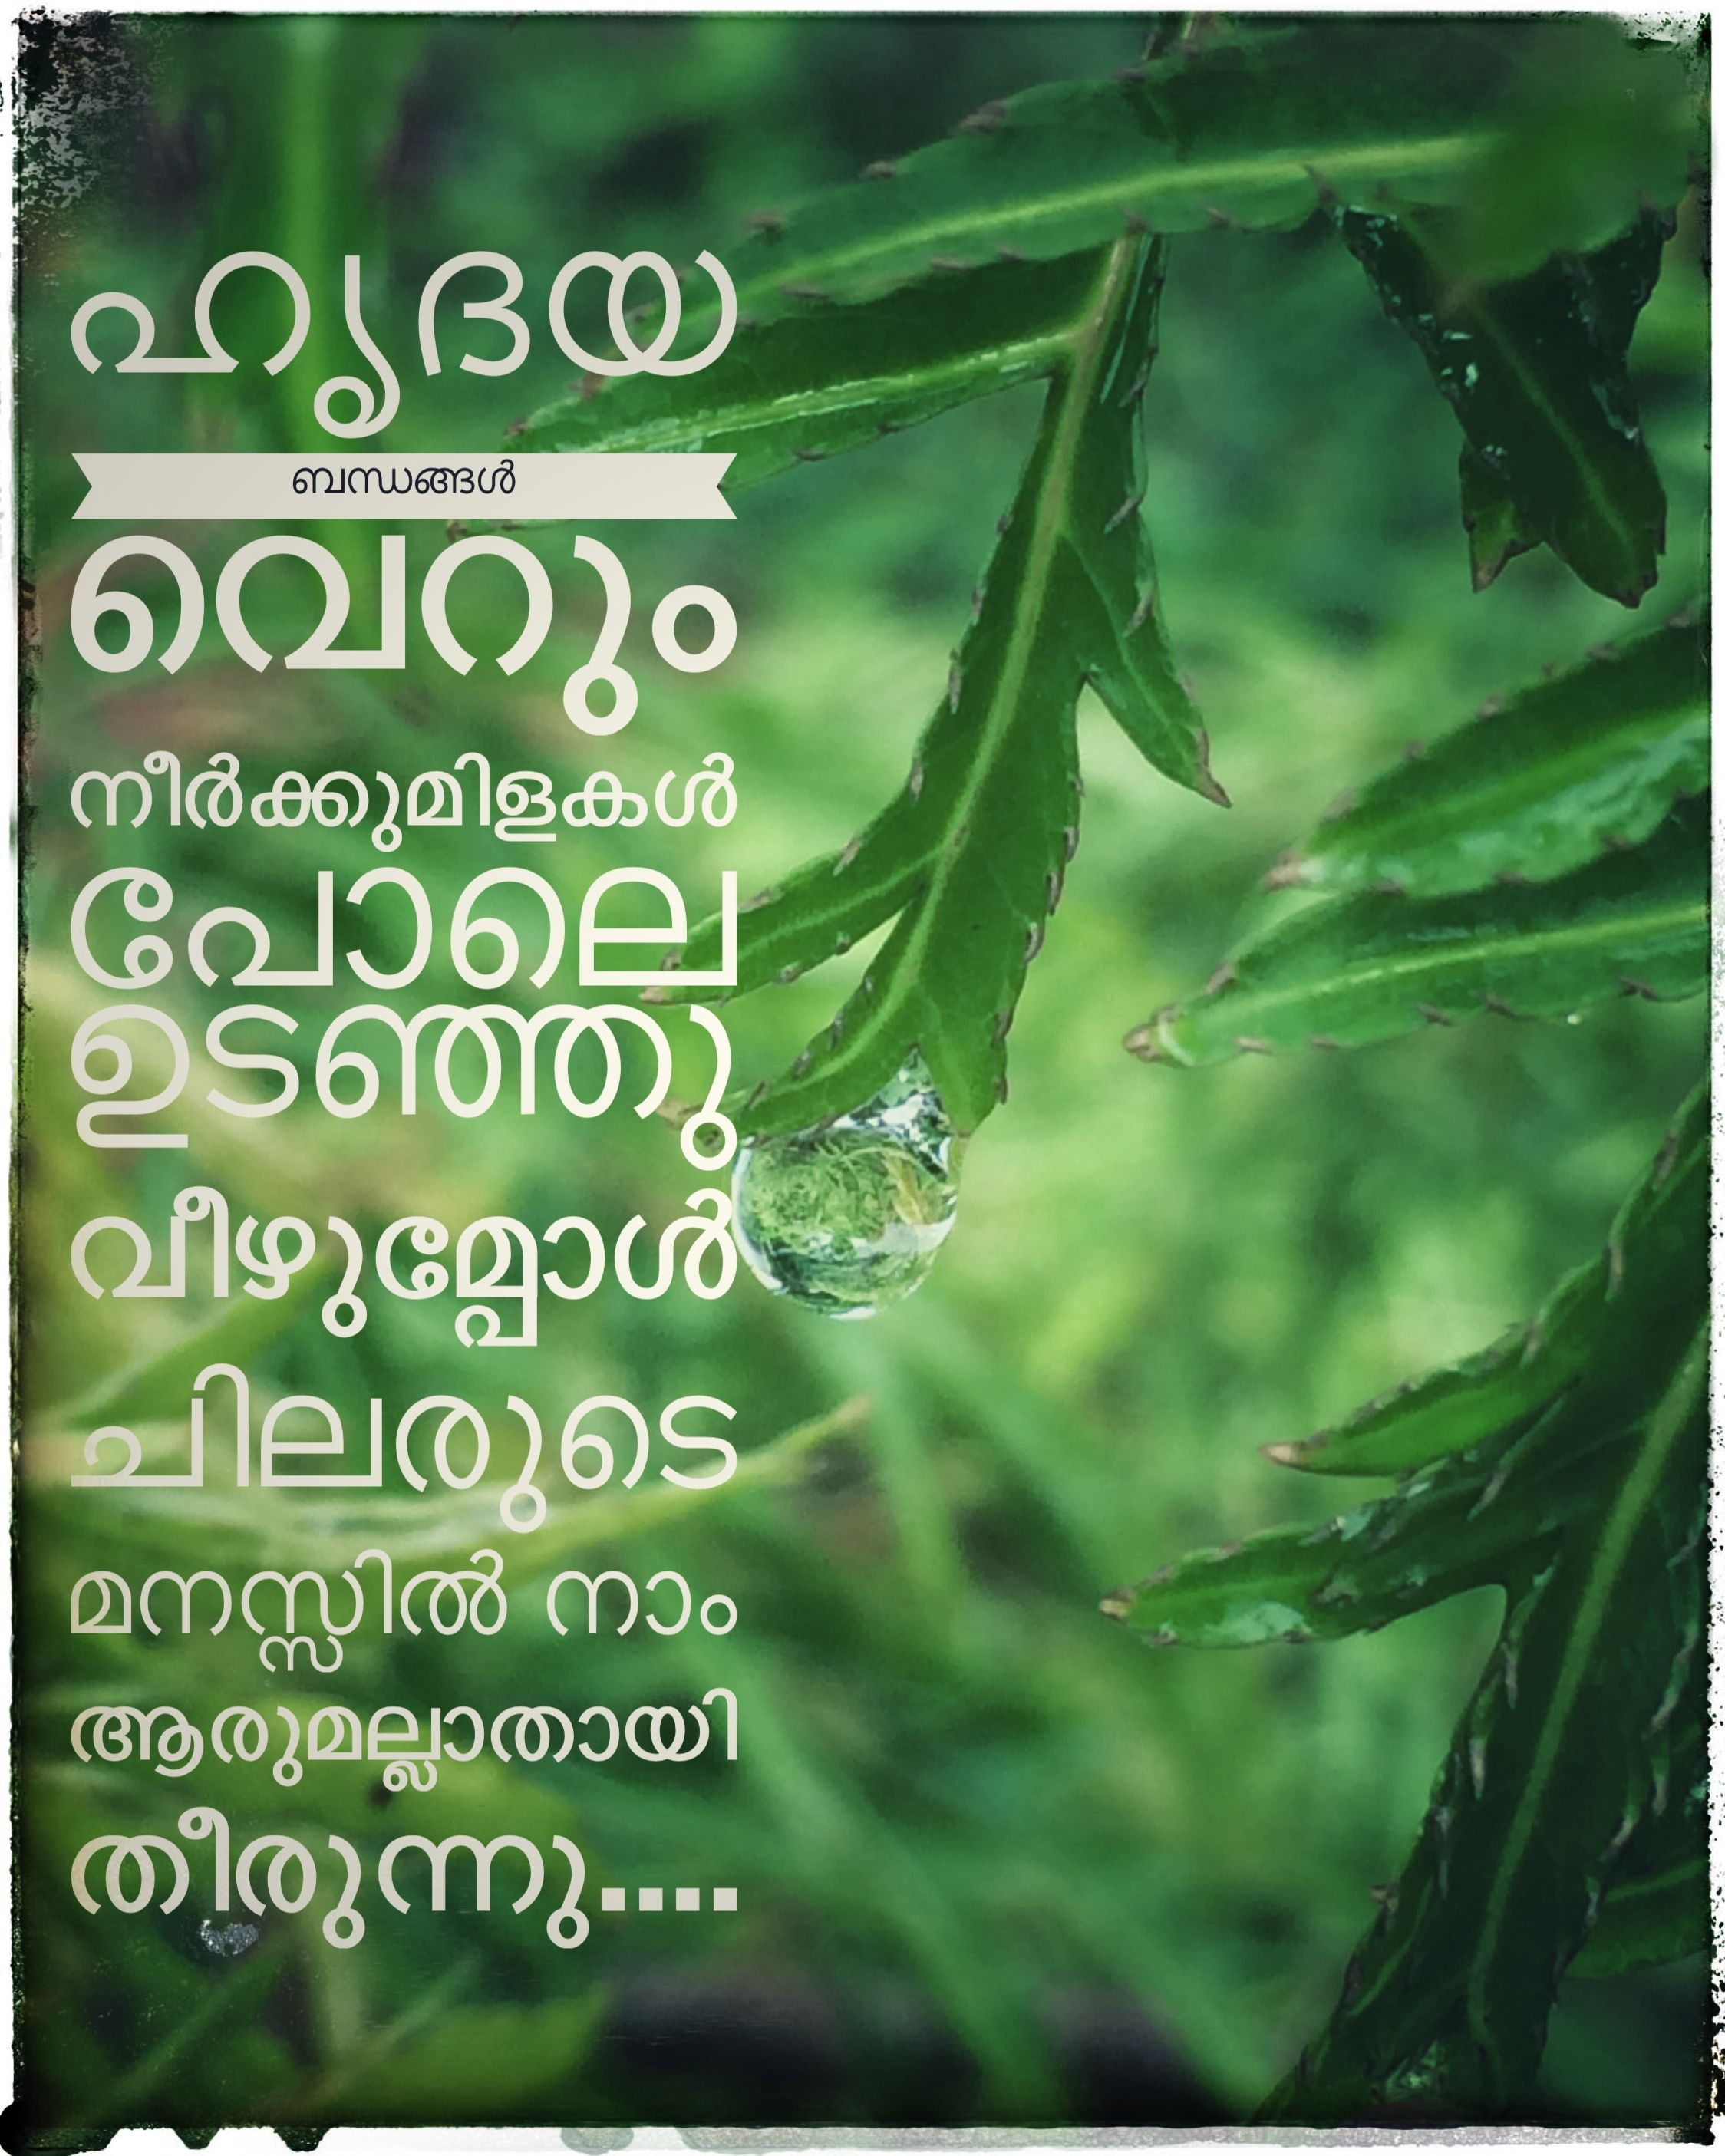 Autograph Book Quotes In Malayalam New Era Of Wiring Diagram